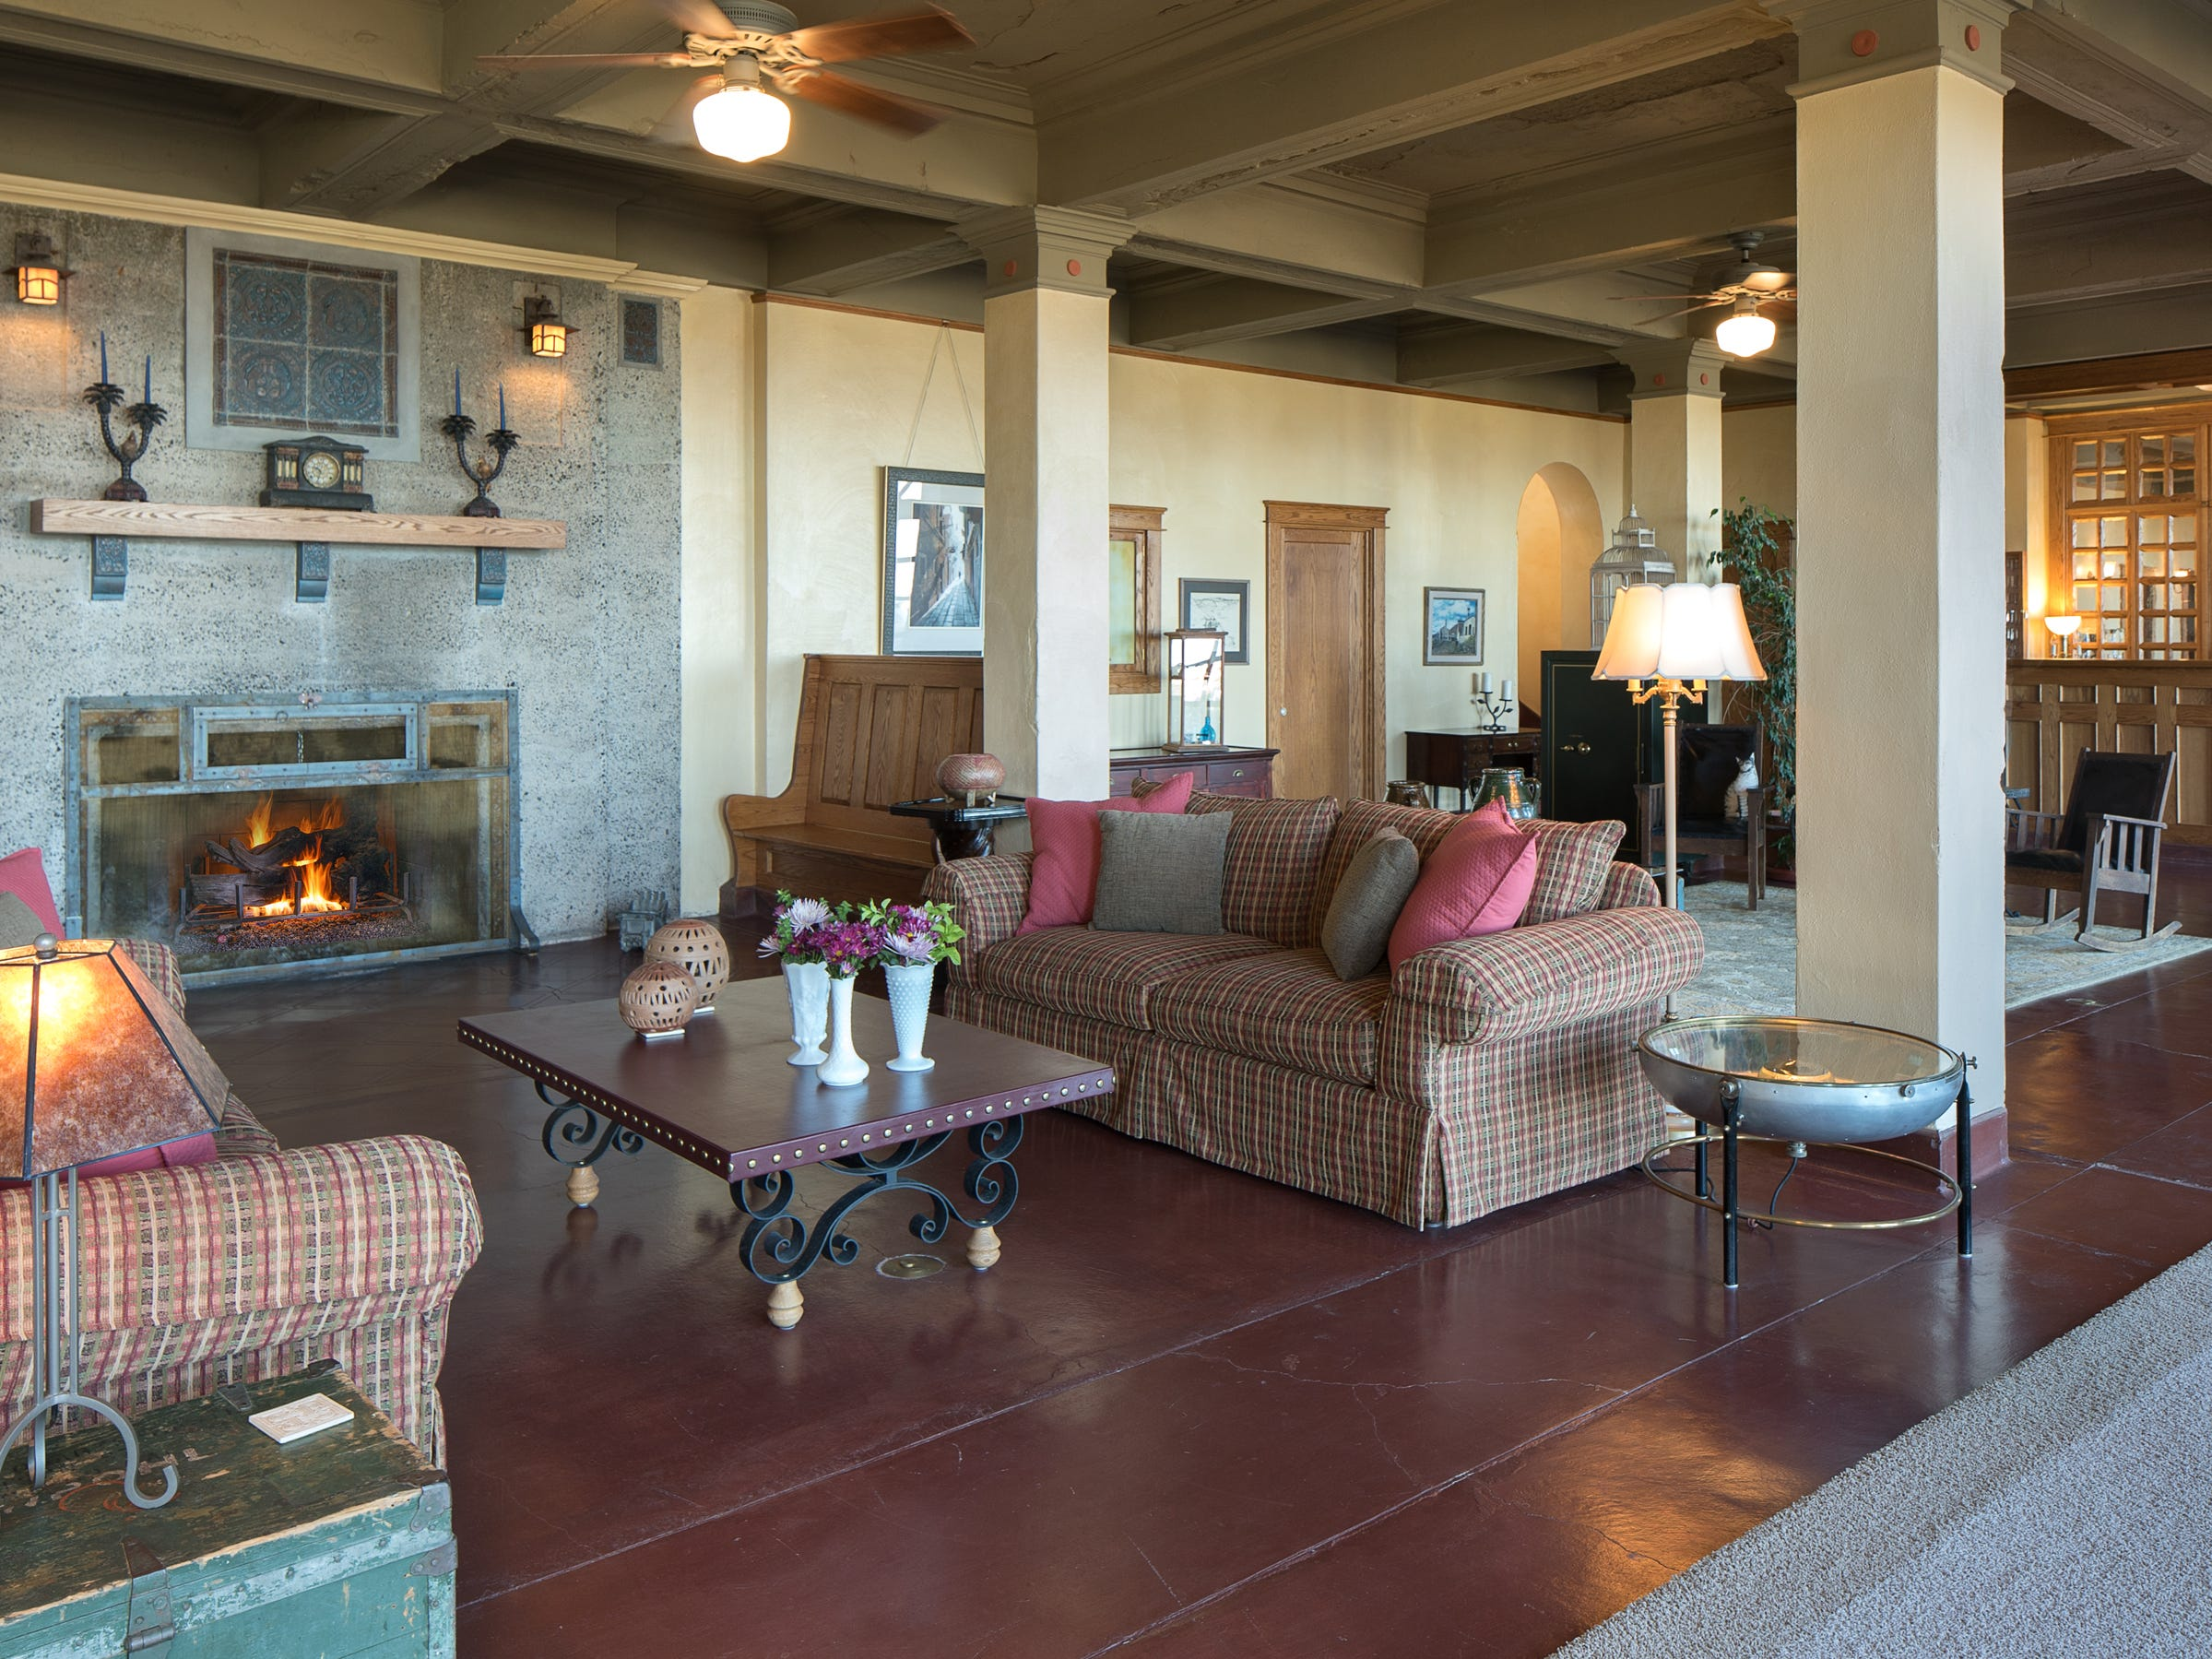 Huge living spaces are seen throughout the 100-year-old former Little Daisy Hotel in Jerome, which was later turned into a single-family home and is now on the market.